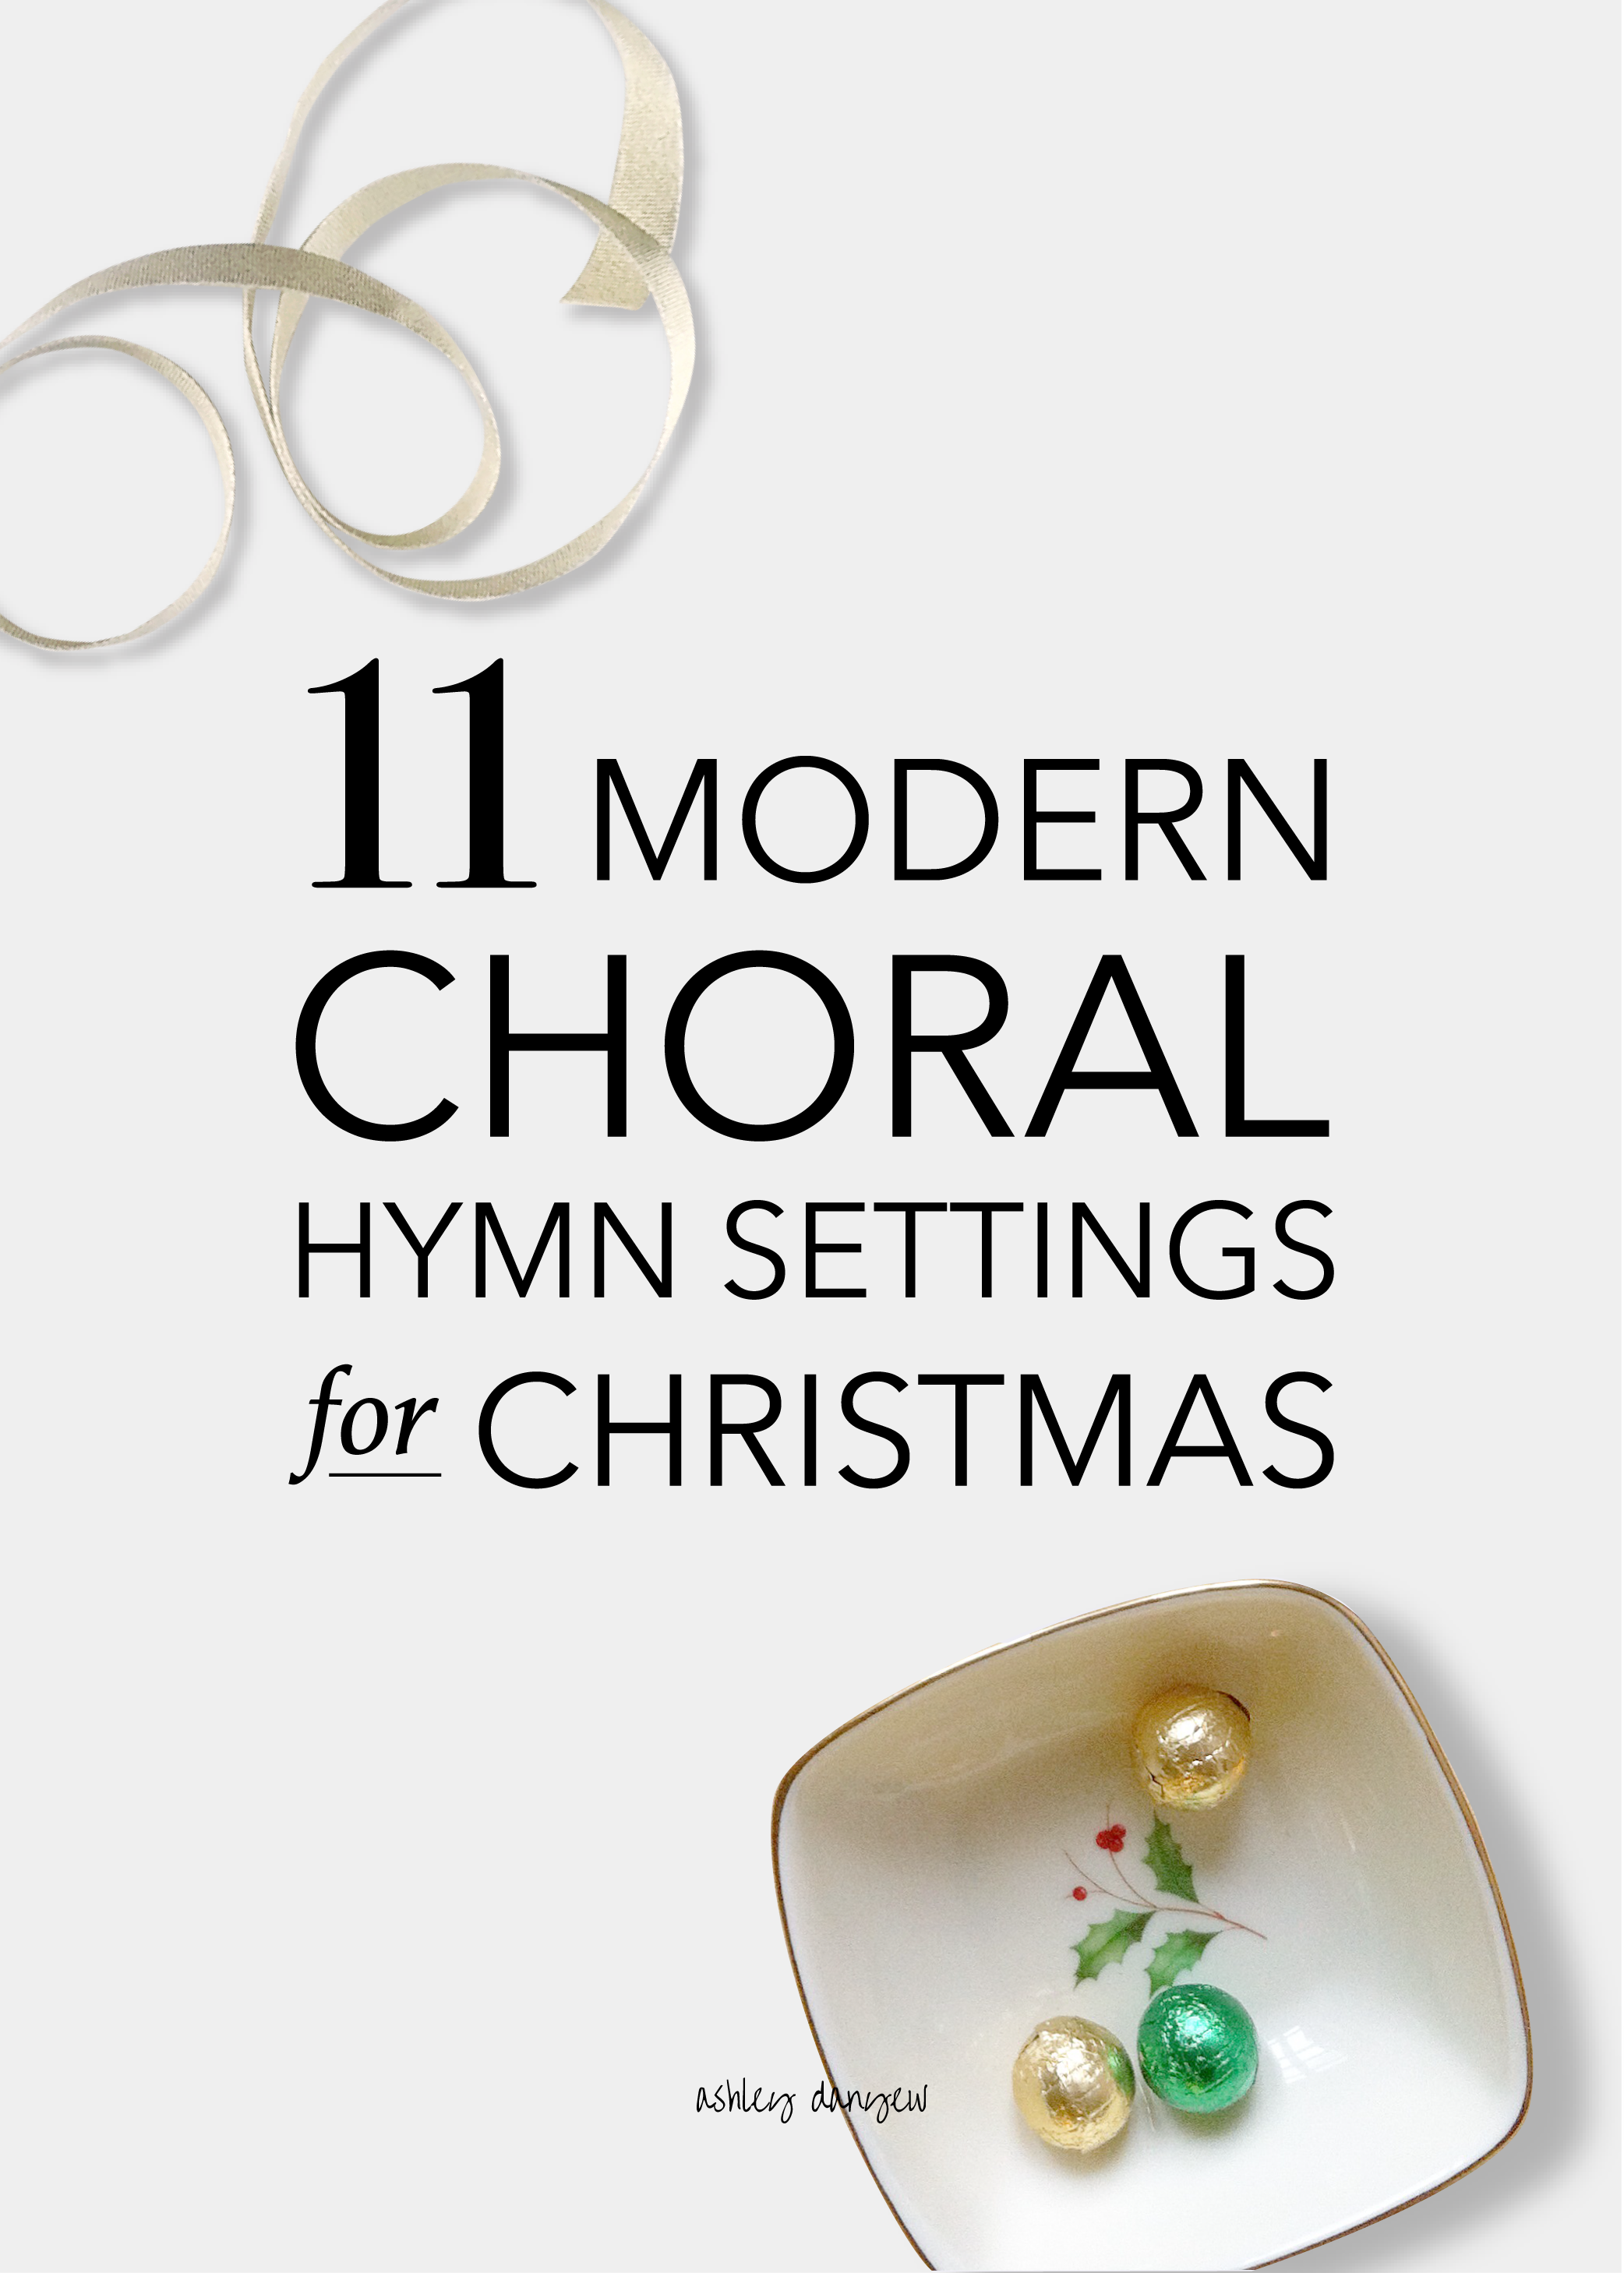 Copy of 11 Modern Choral Hymn Settings for Christmas